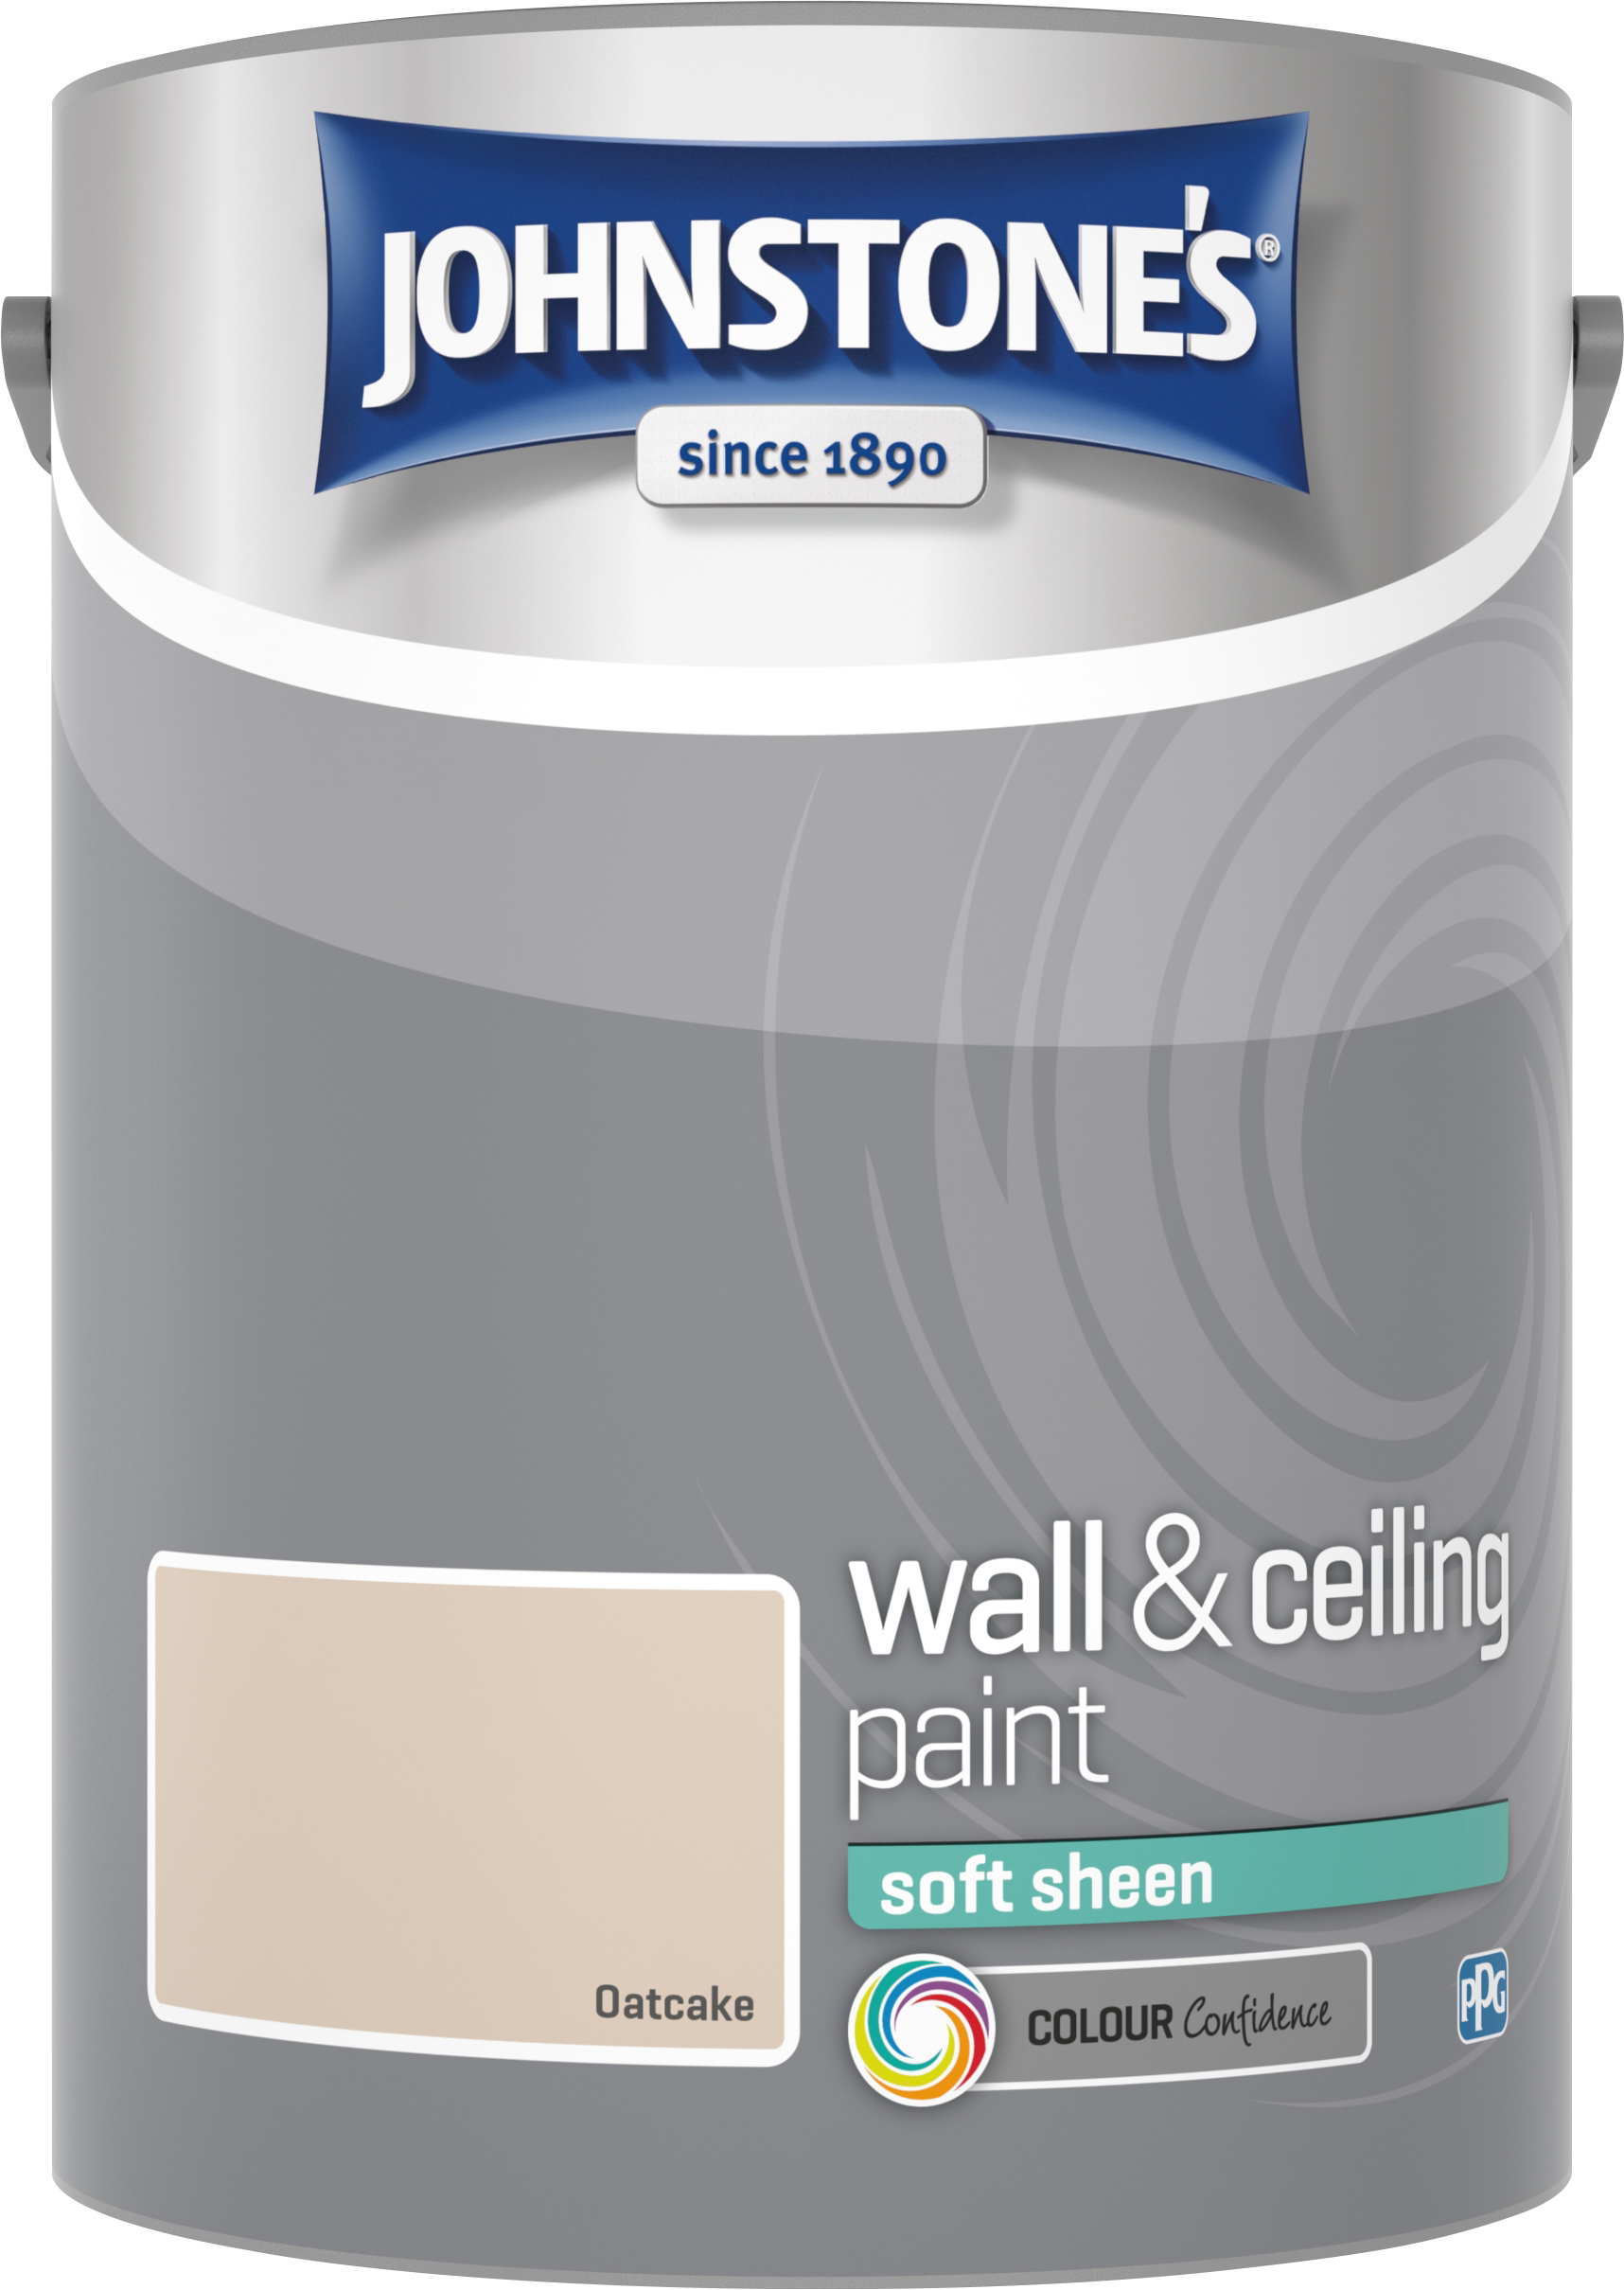 Johnstone's 304191 5 Litre Soft Sheen Emulsion Paint - Oatcake